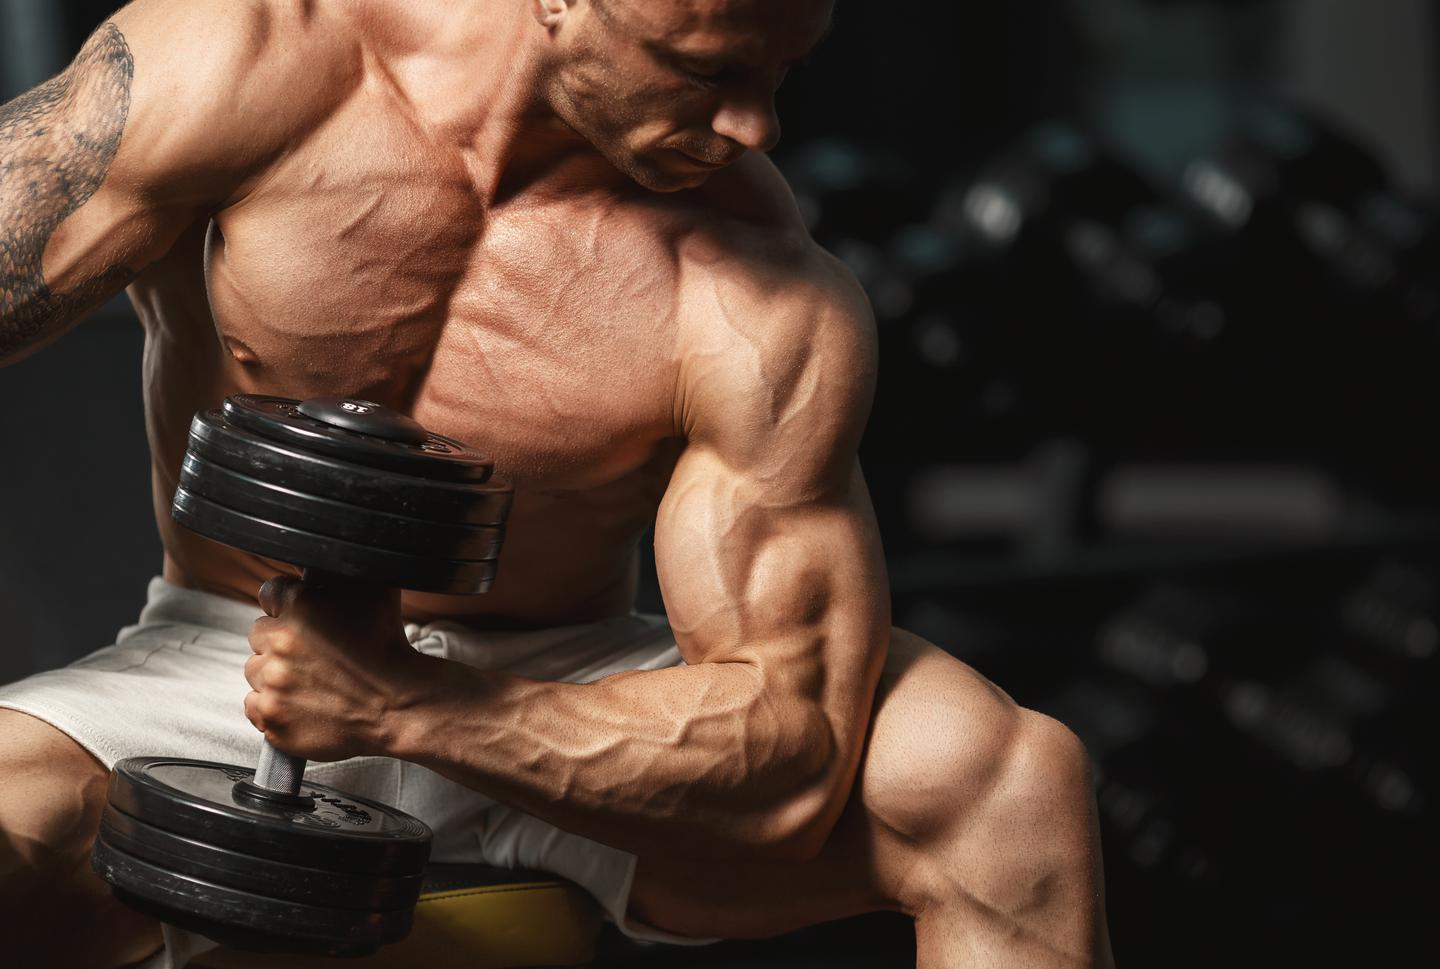 Benefits And Side Effects Of Rad 140 Purchase